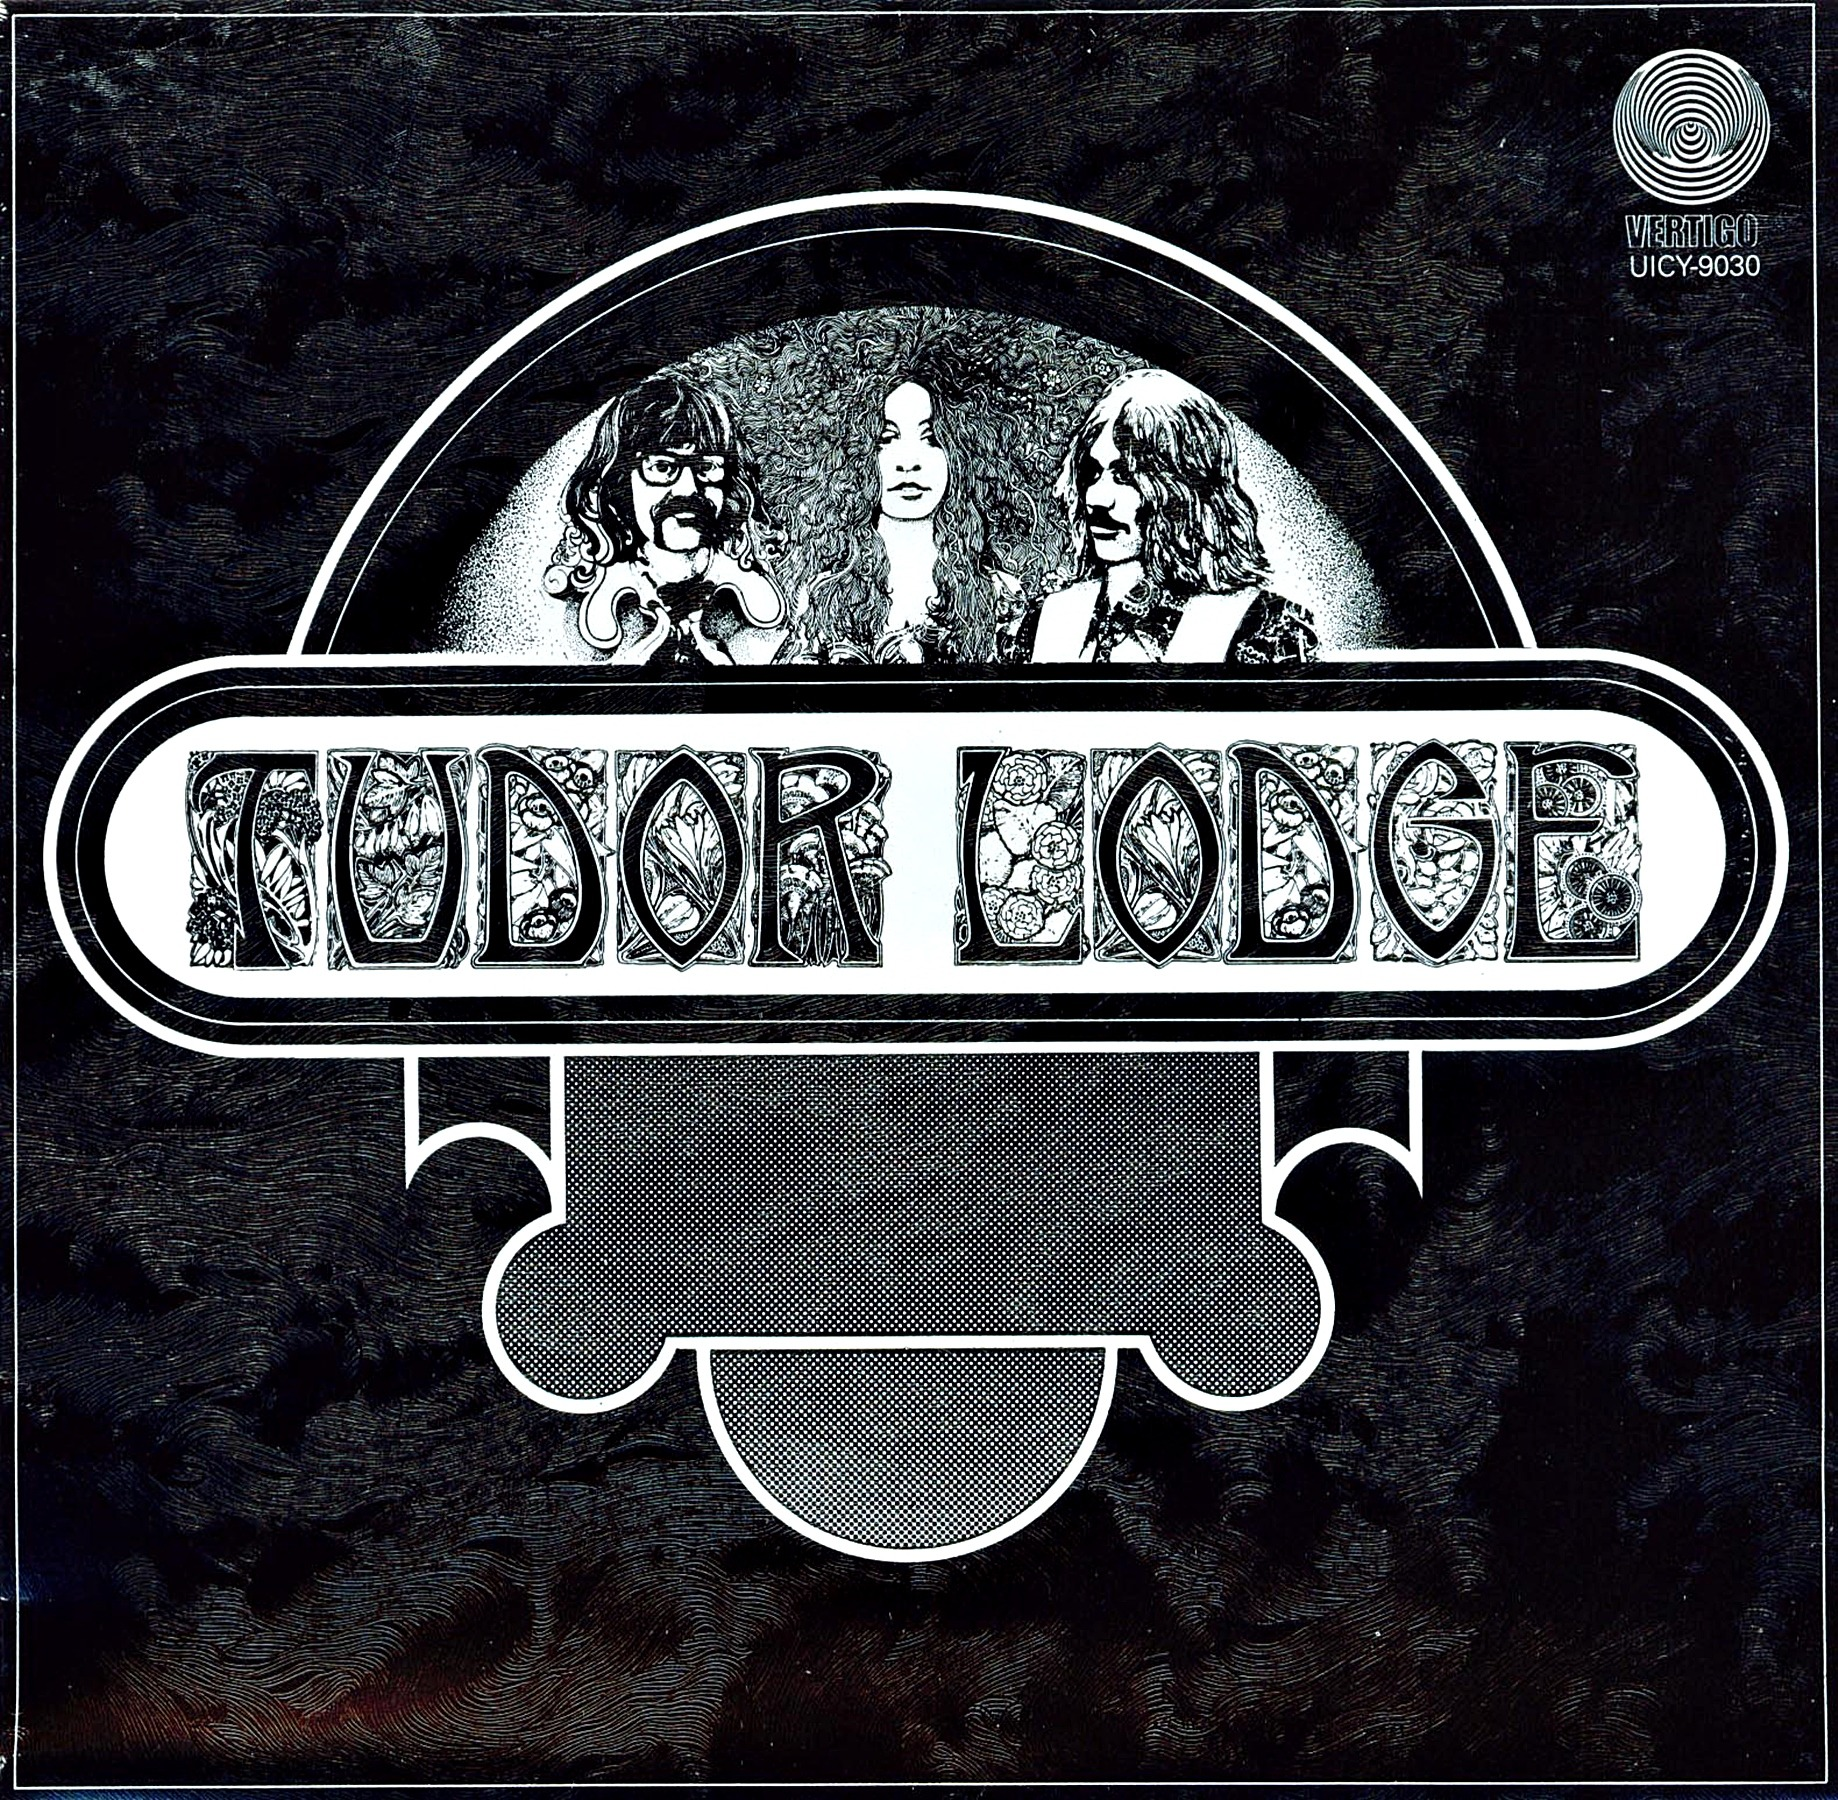 Tudor Lodge - It All Comes Back to Me